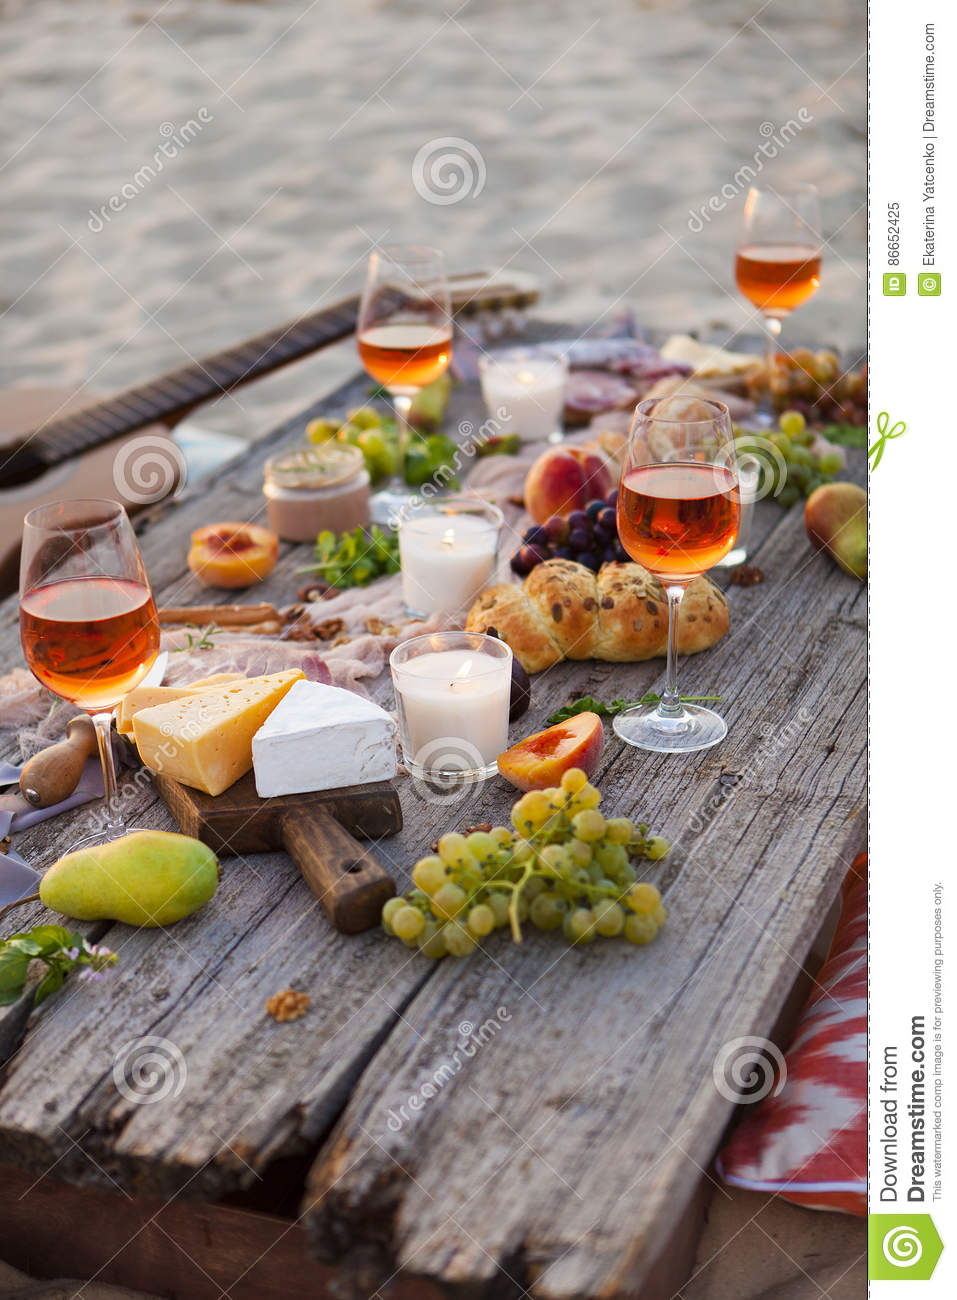 Picnic on the beach at sunset in boho style, food and drink conc